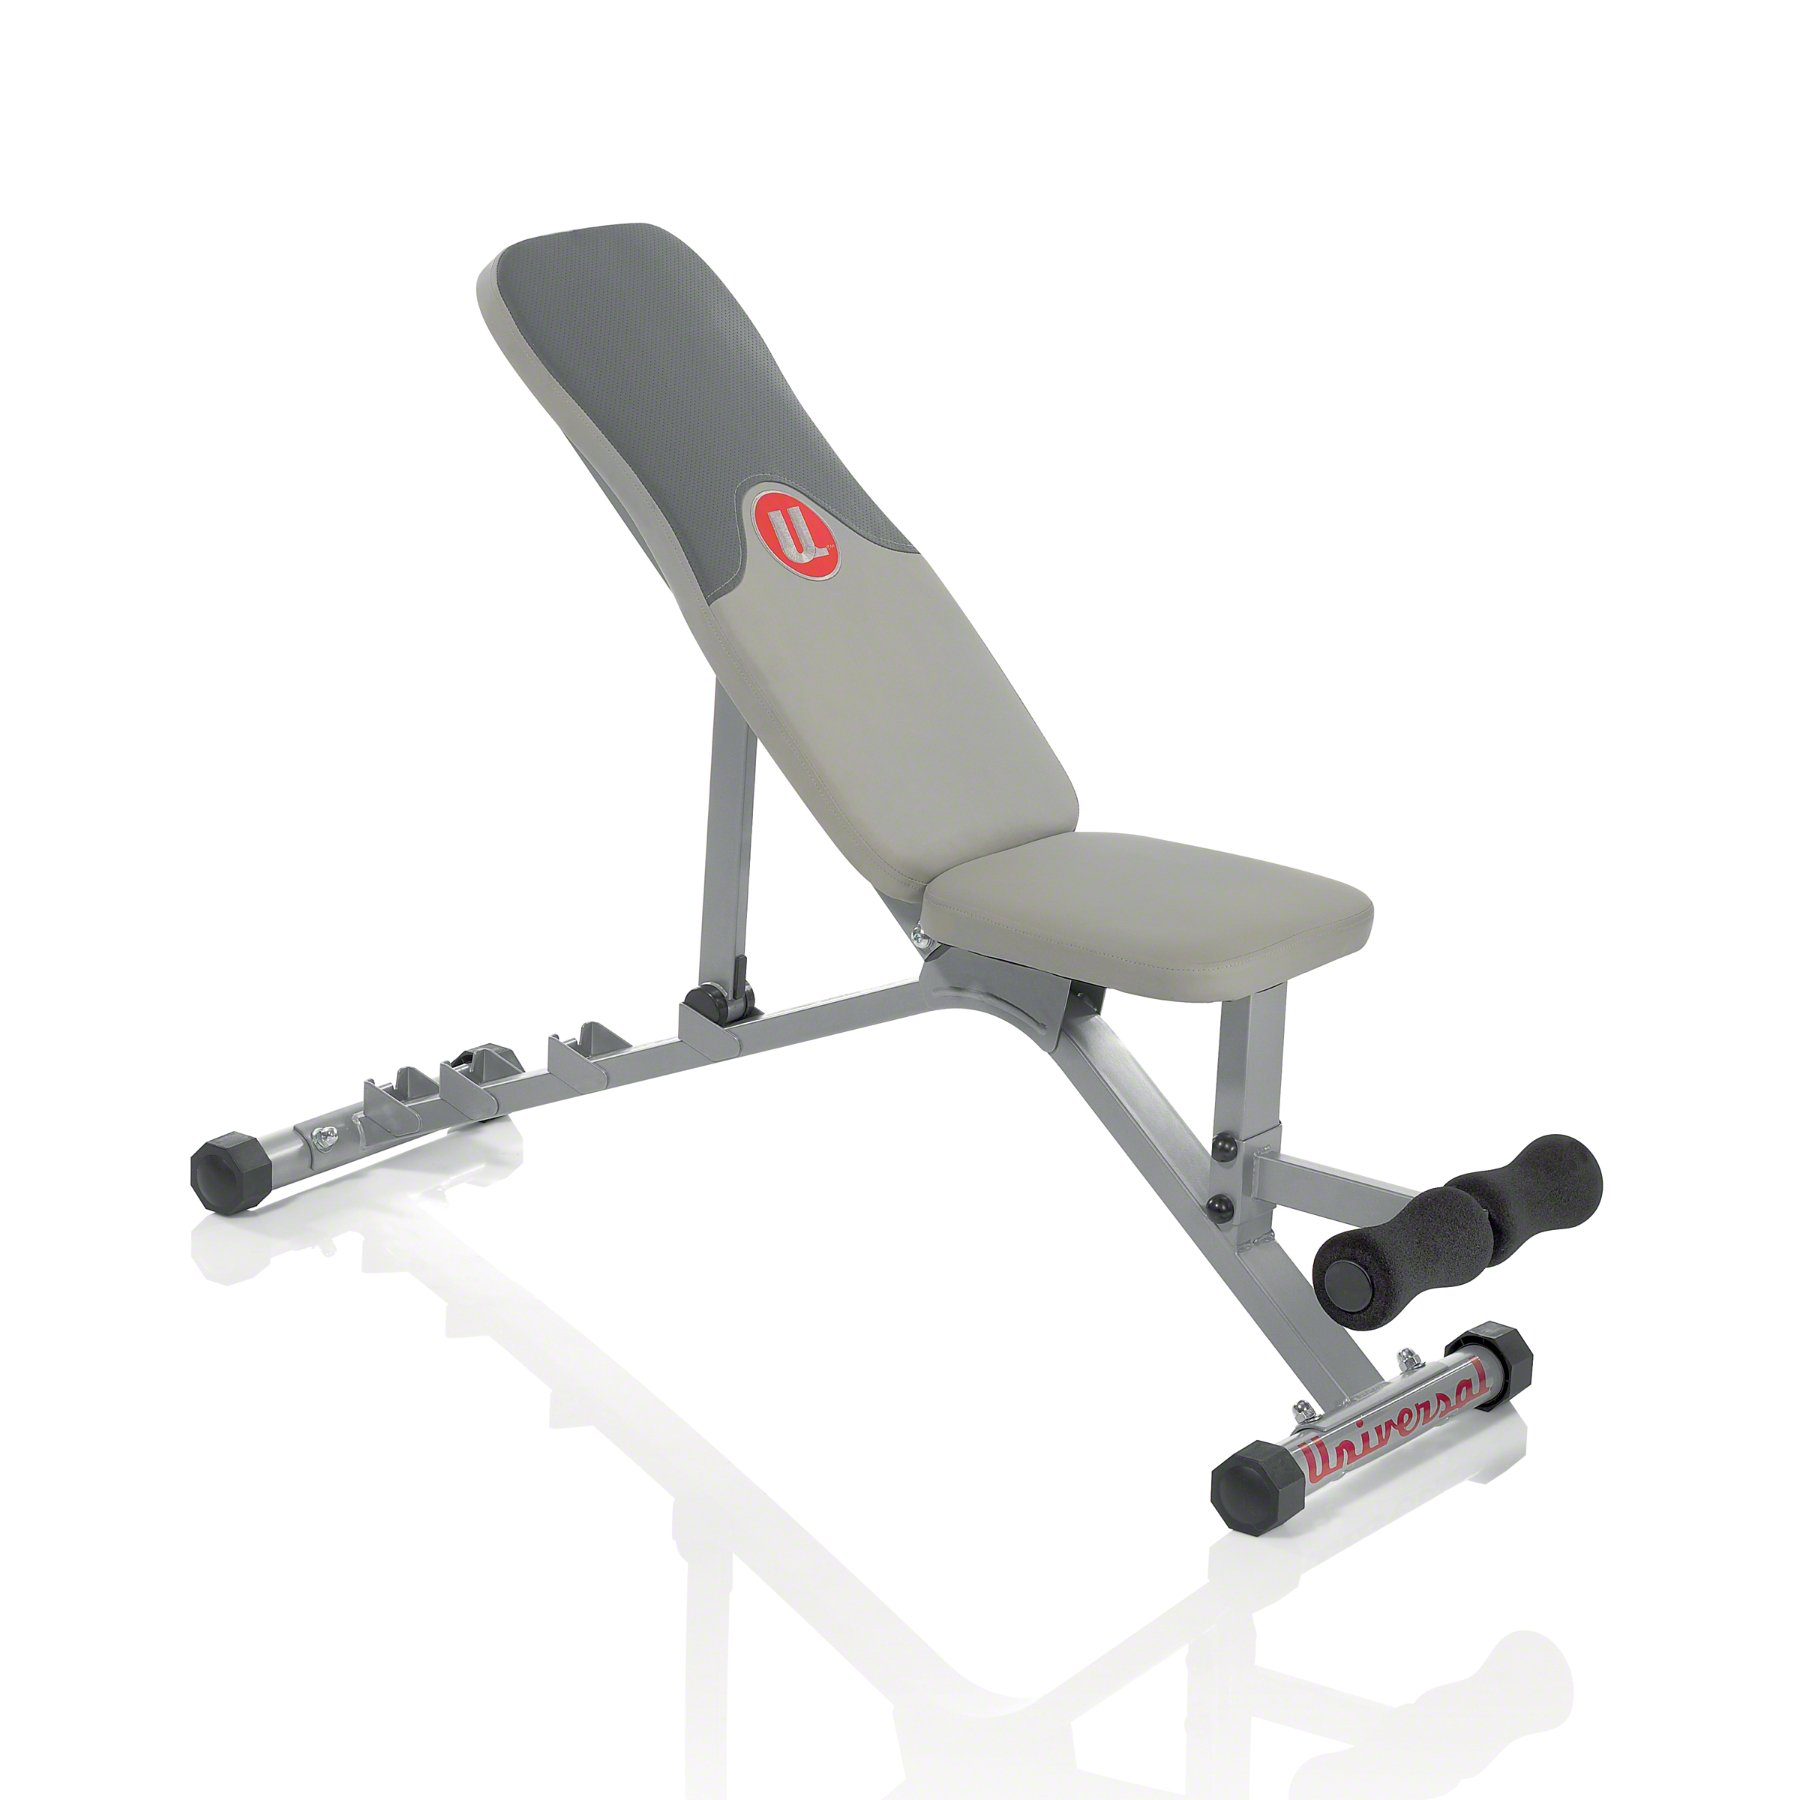 Universal 5 Position Weight Bench by Universal by Nautilus